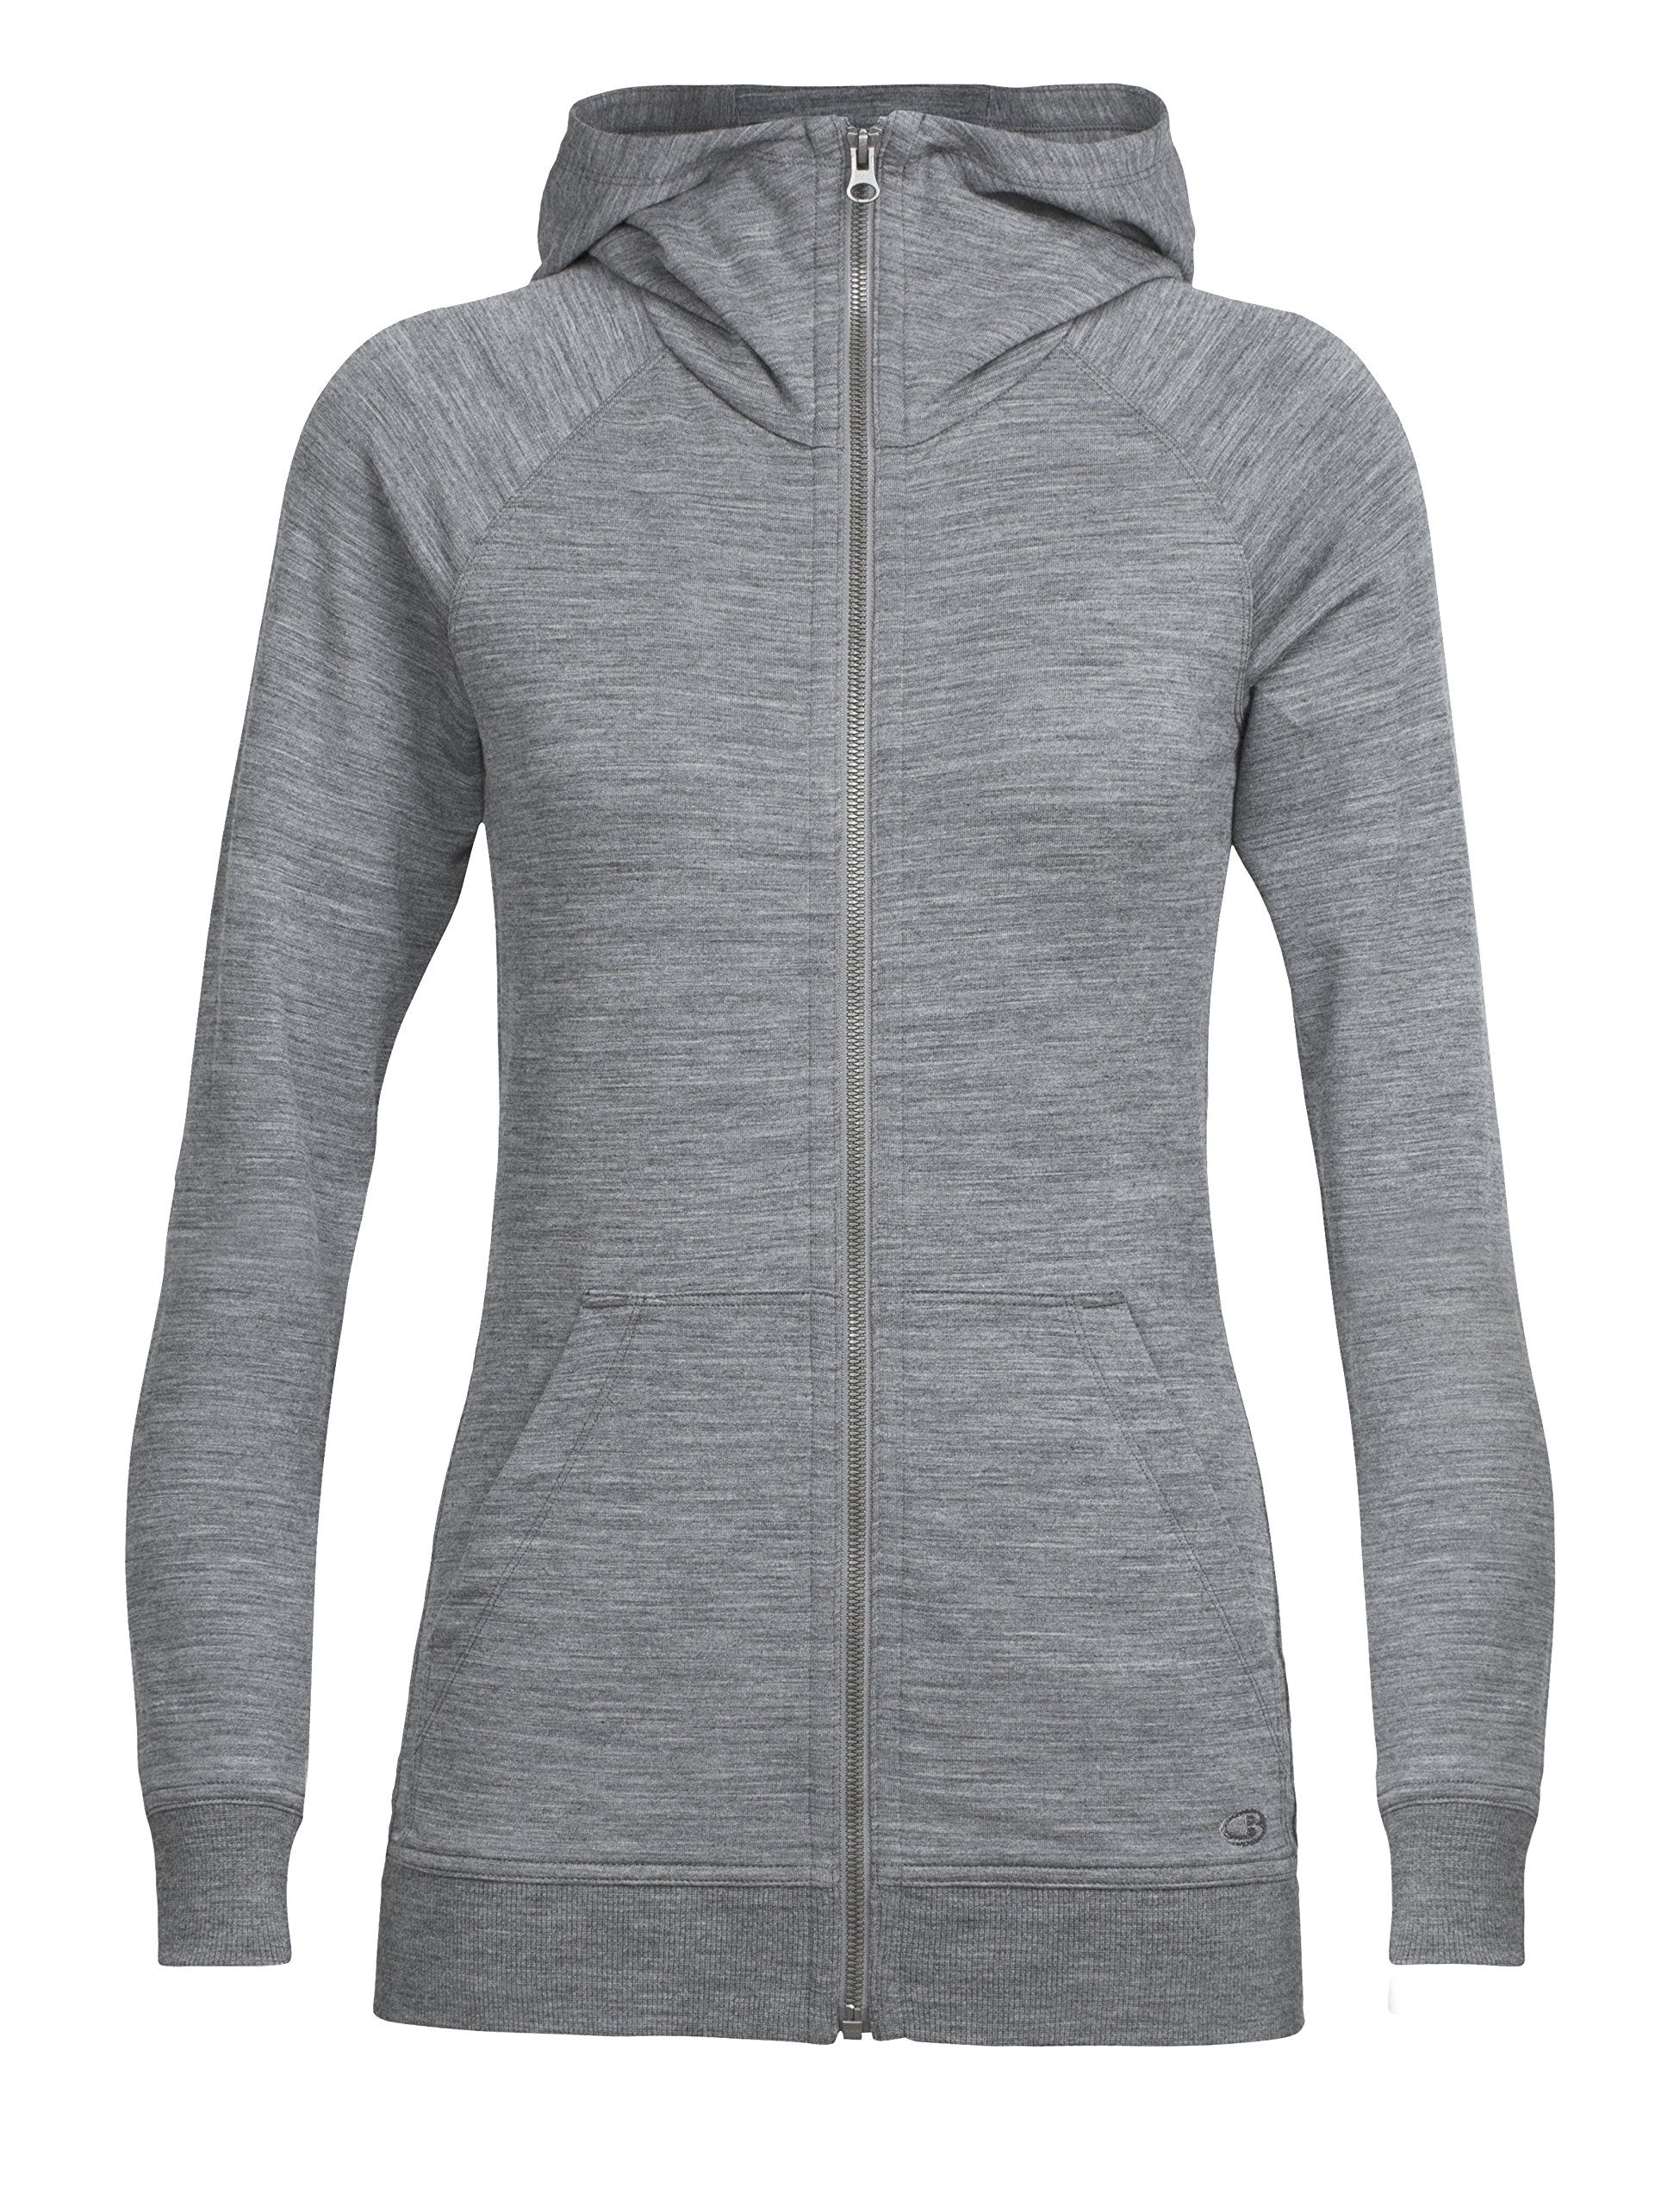 913 B0WSvQL - Icebreaker Women's Crush Long Sleeve Zip Hoodie